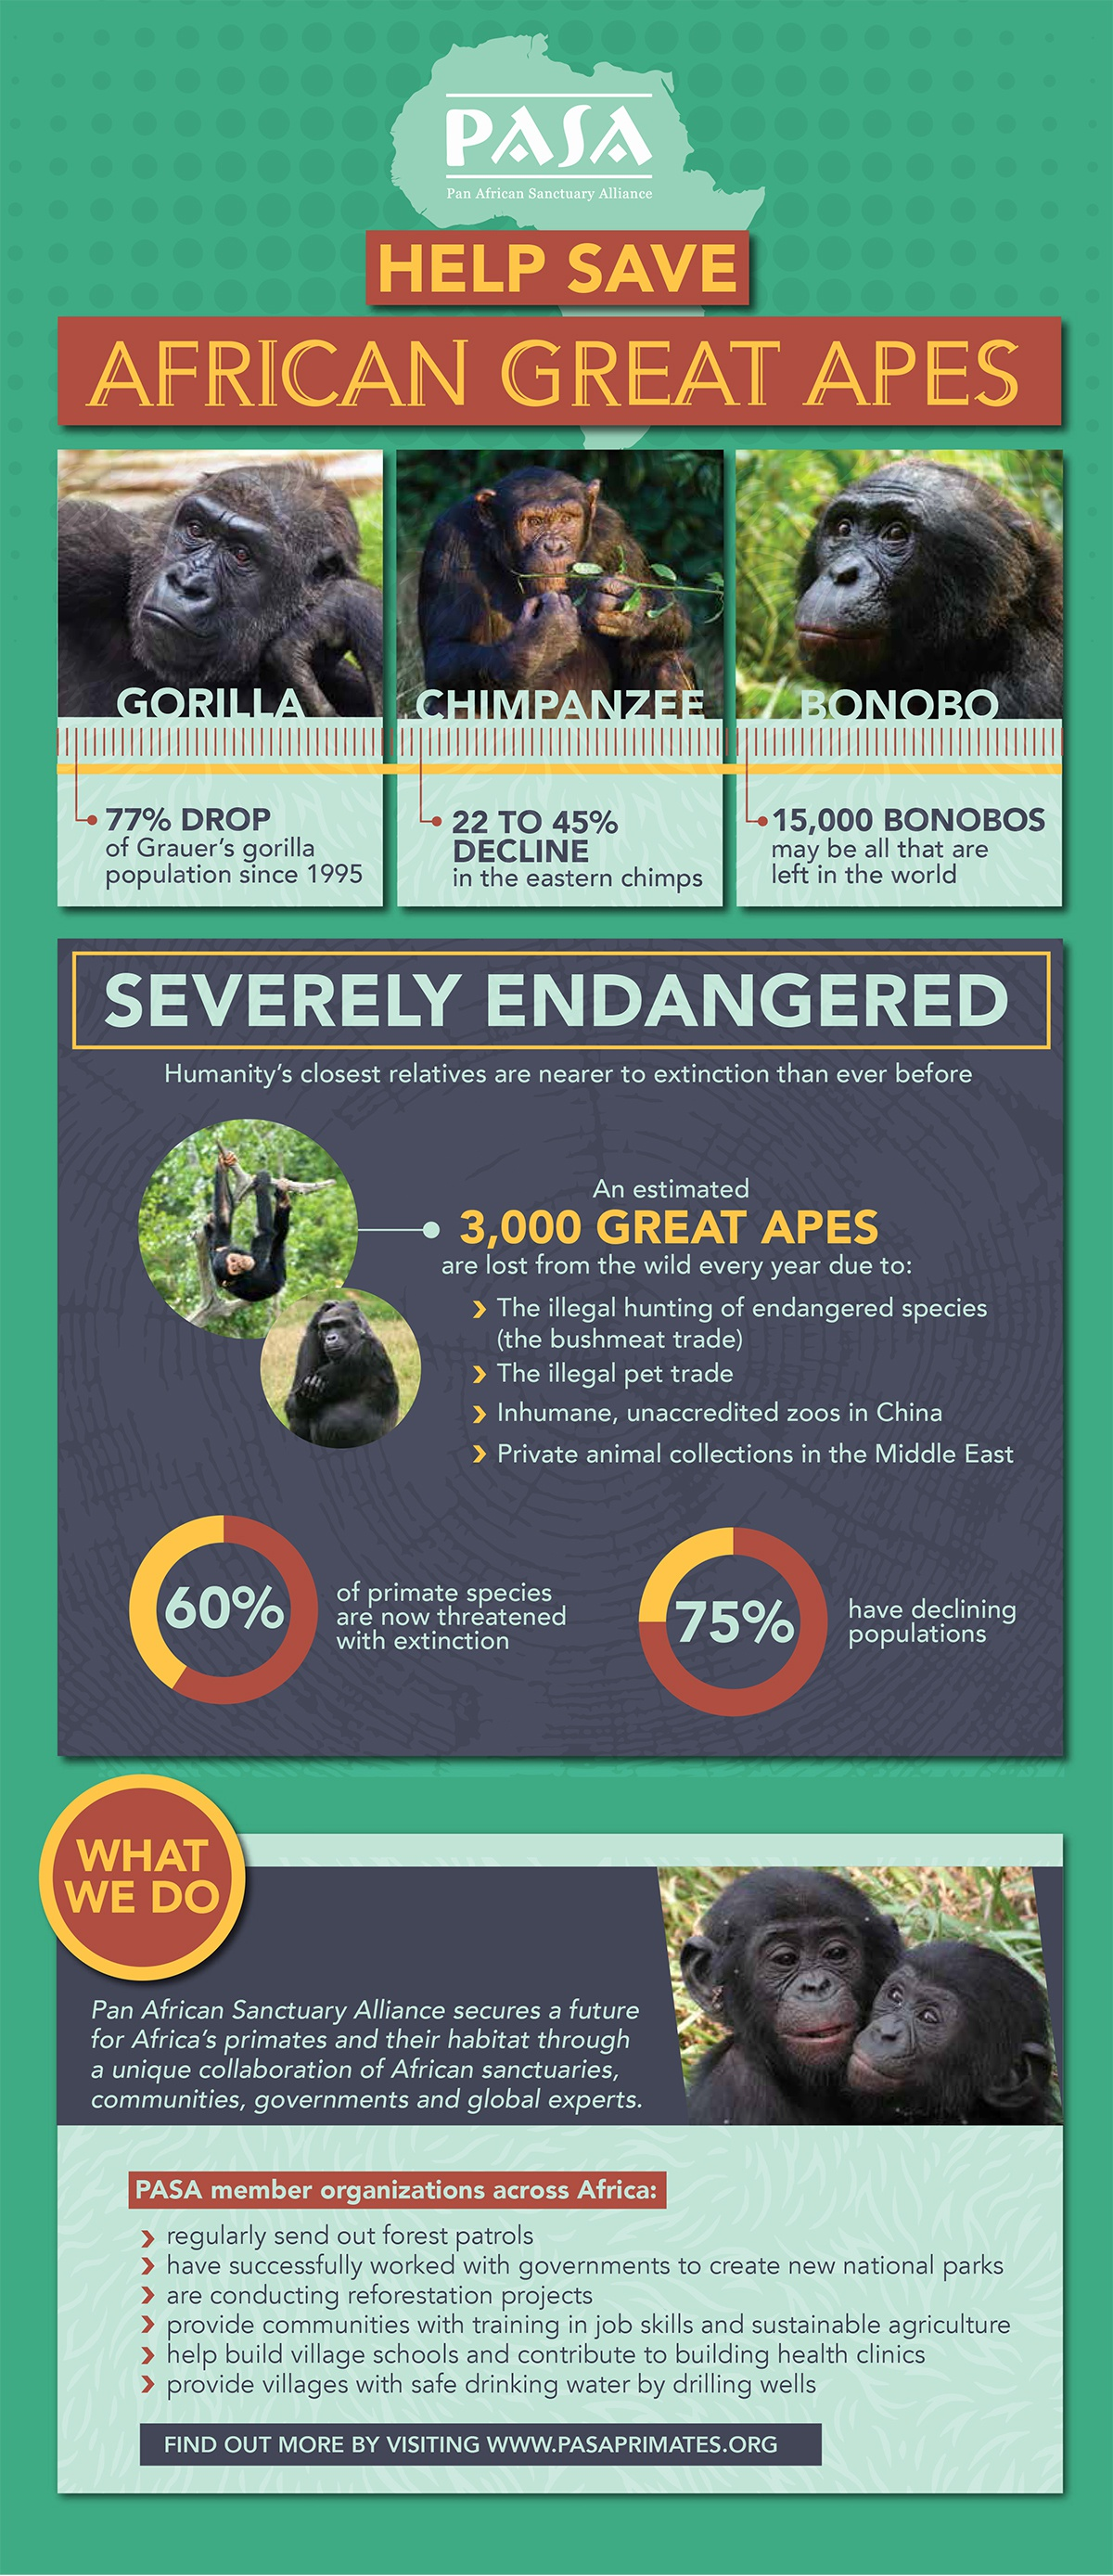 Infographic / Poster: PASA Pan African Sanctuary Alliance's member organizations' goal to Help Save African Great Apes.